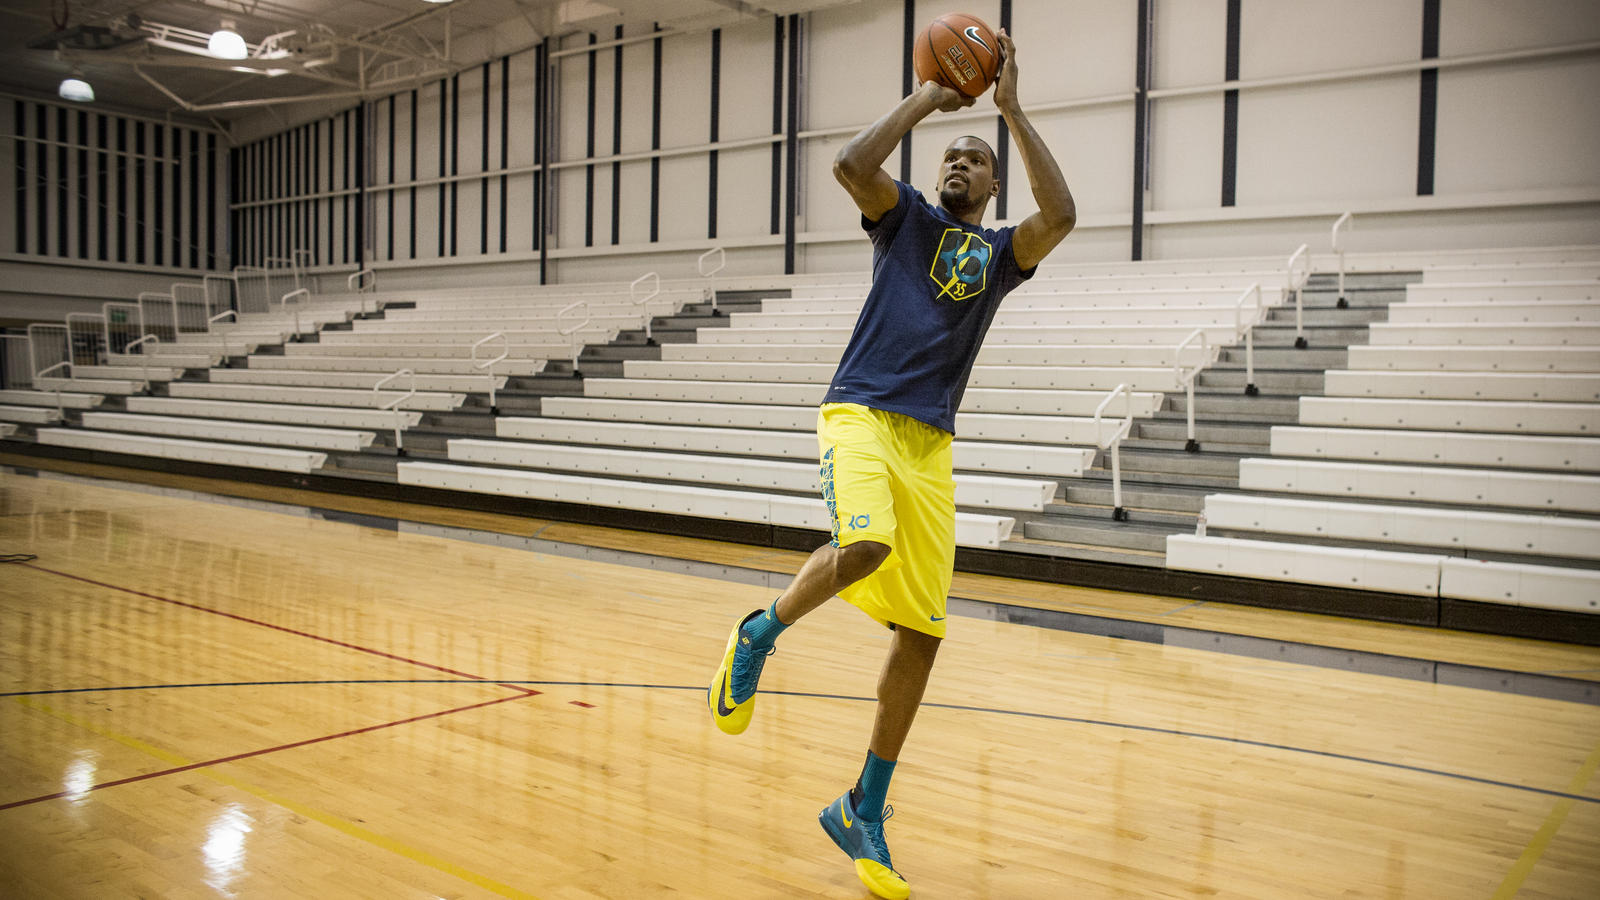 The KD VI: Kevin Durant's Most